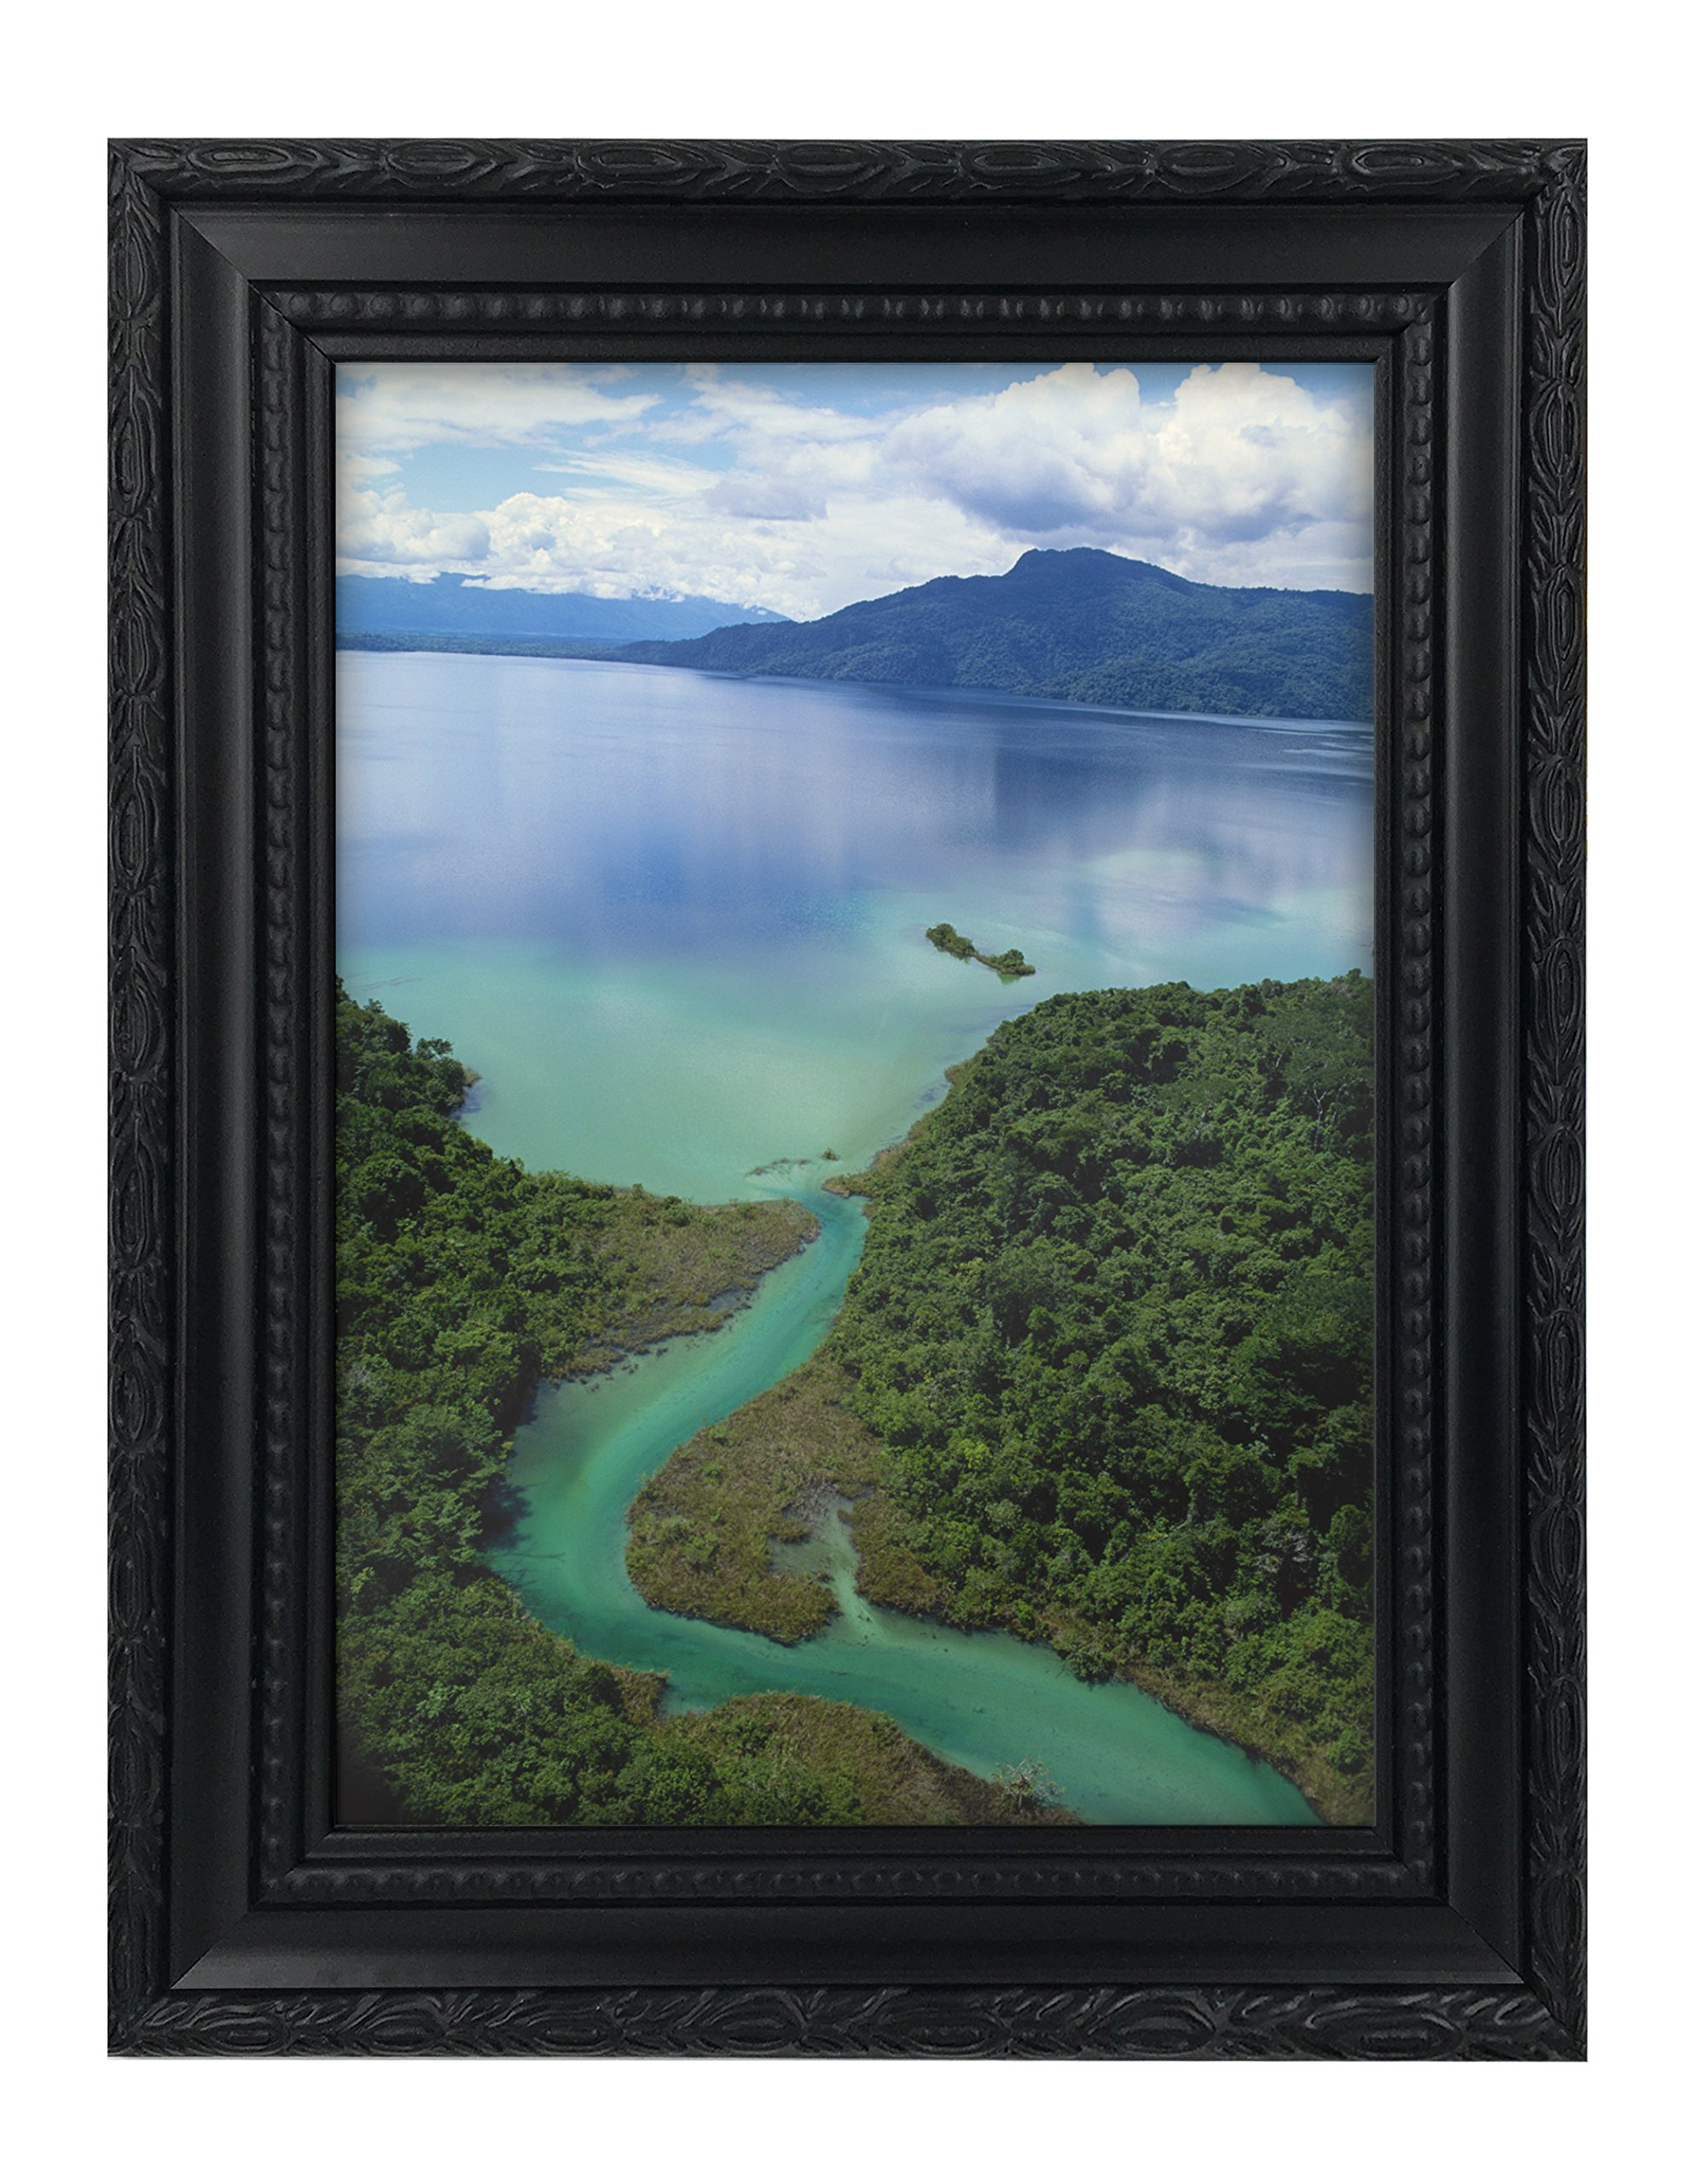 zealand mats pine photo mat frame town malaysian gallery durian wood ready old walnut presentation itm for matted a and pack with new step